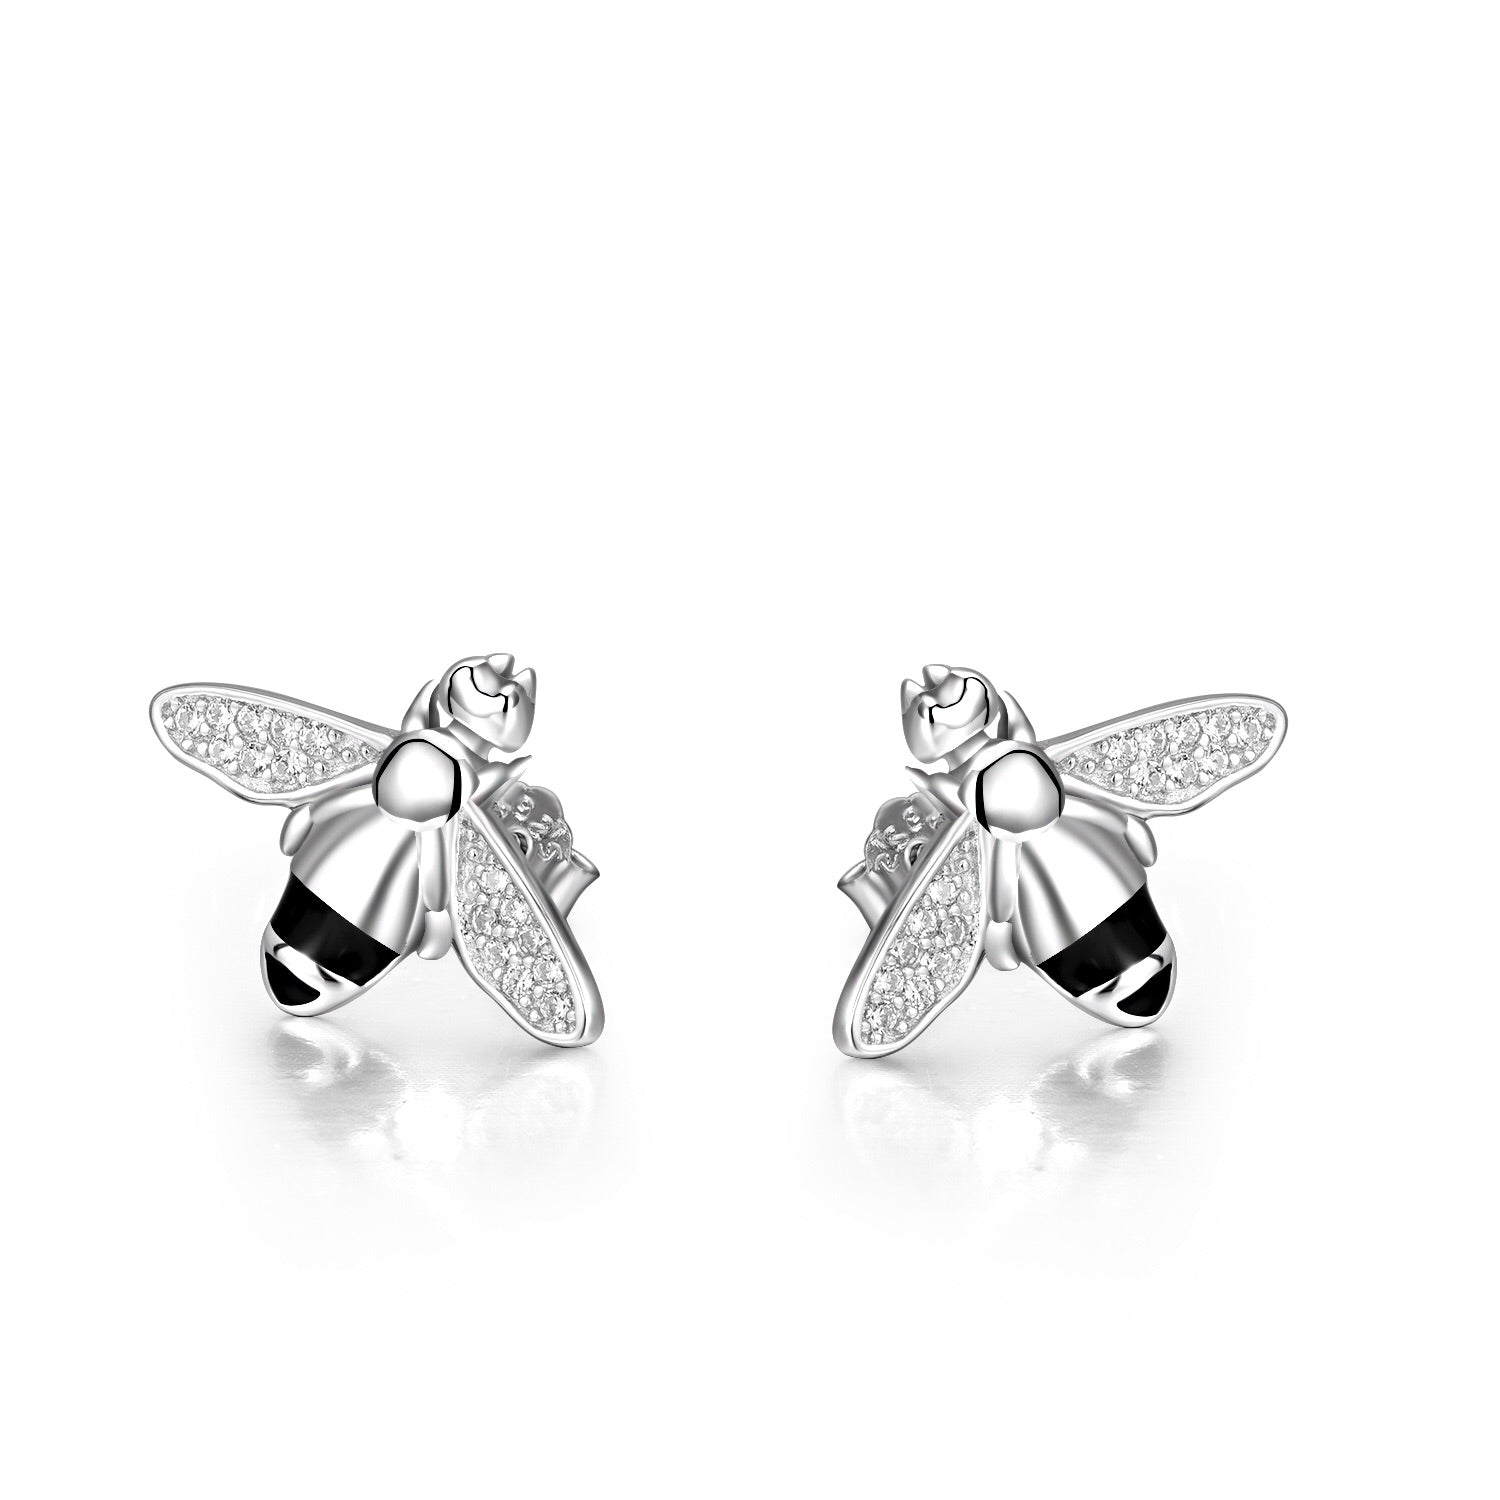 lamevallar pastal l jewellery silver names earrings